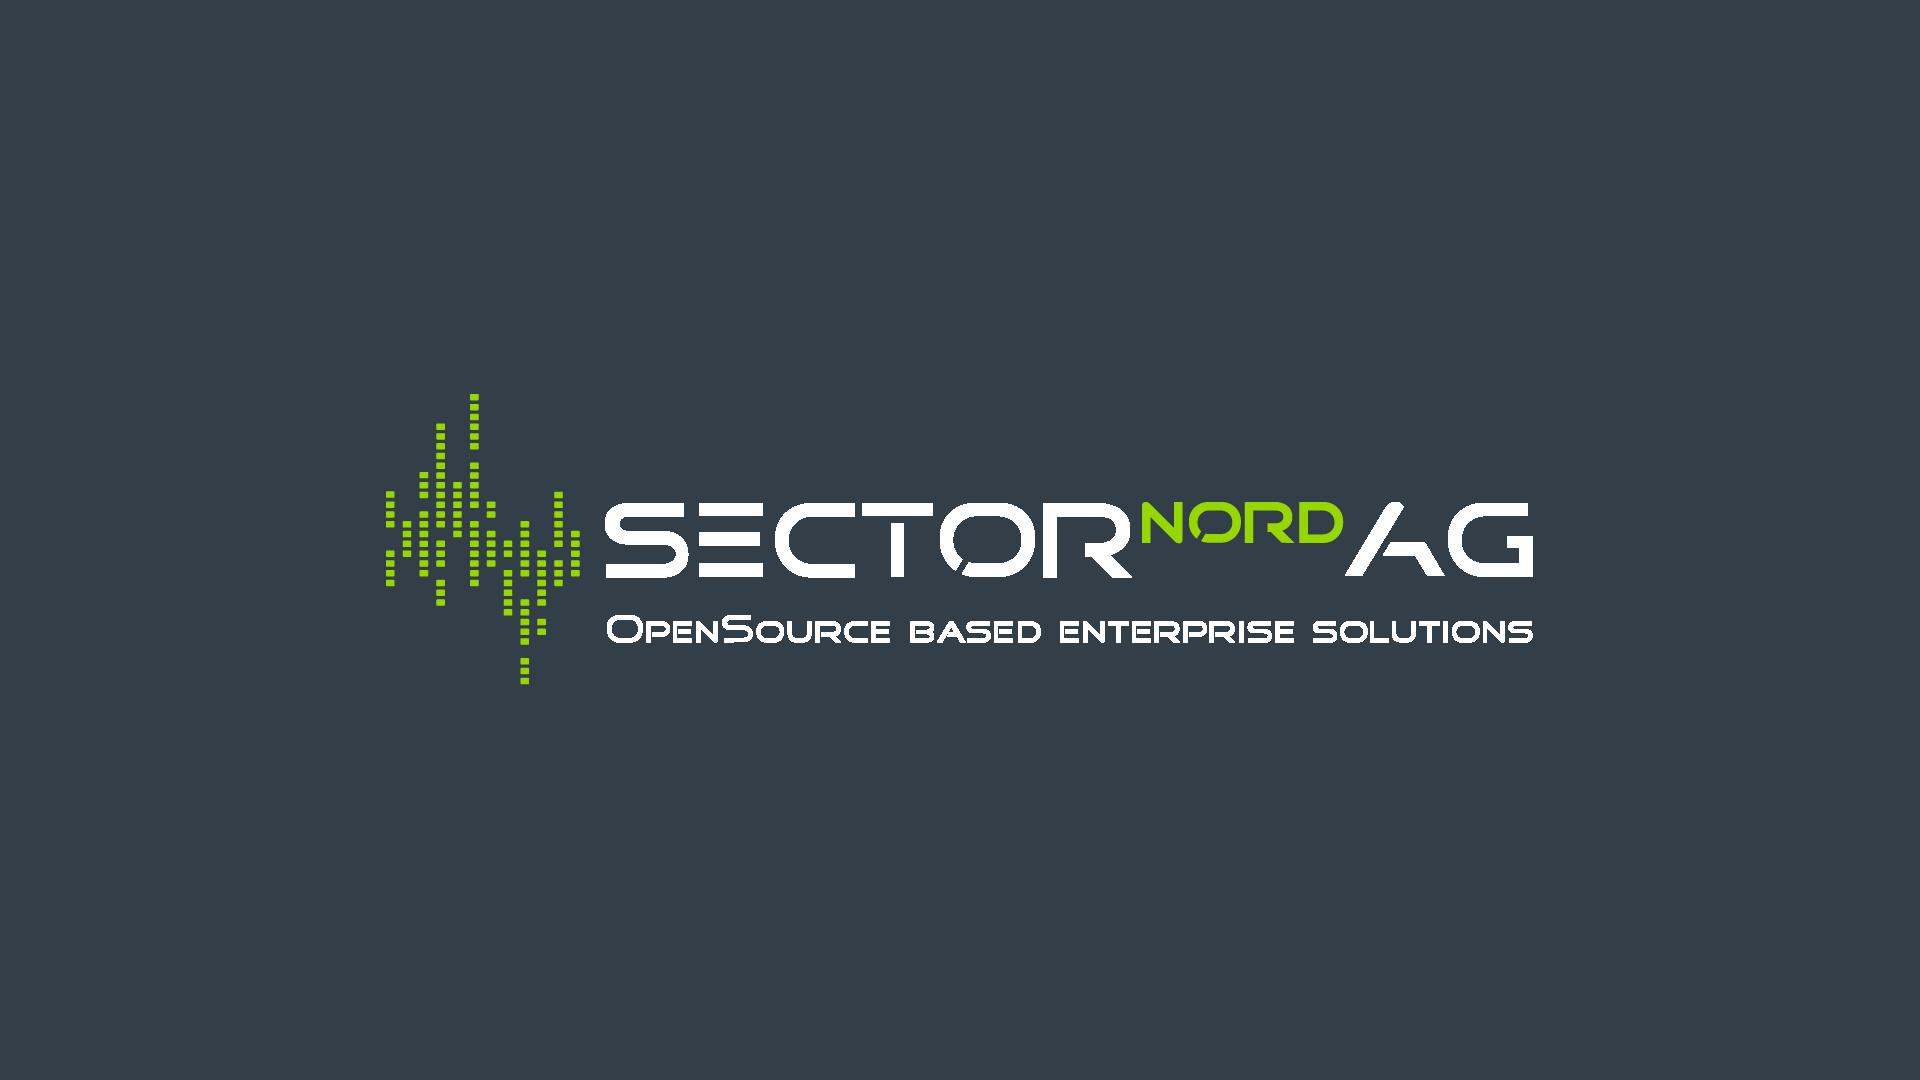 wallpaper - Sector Nord AG